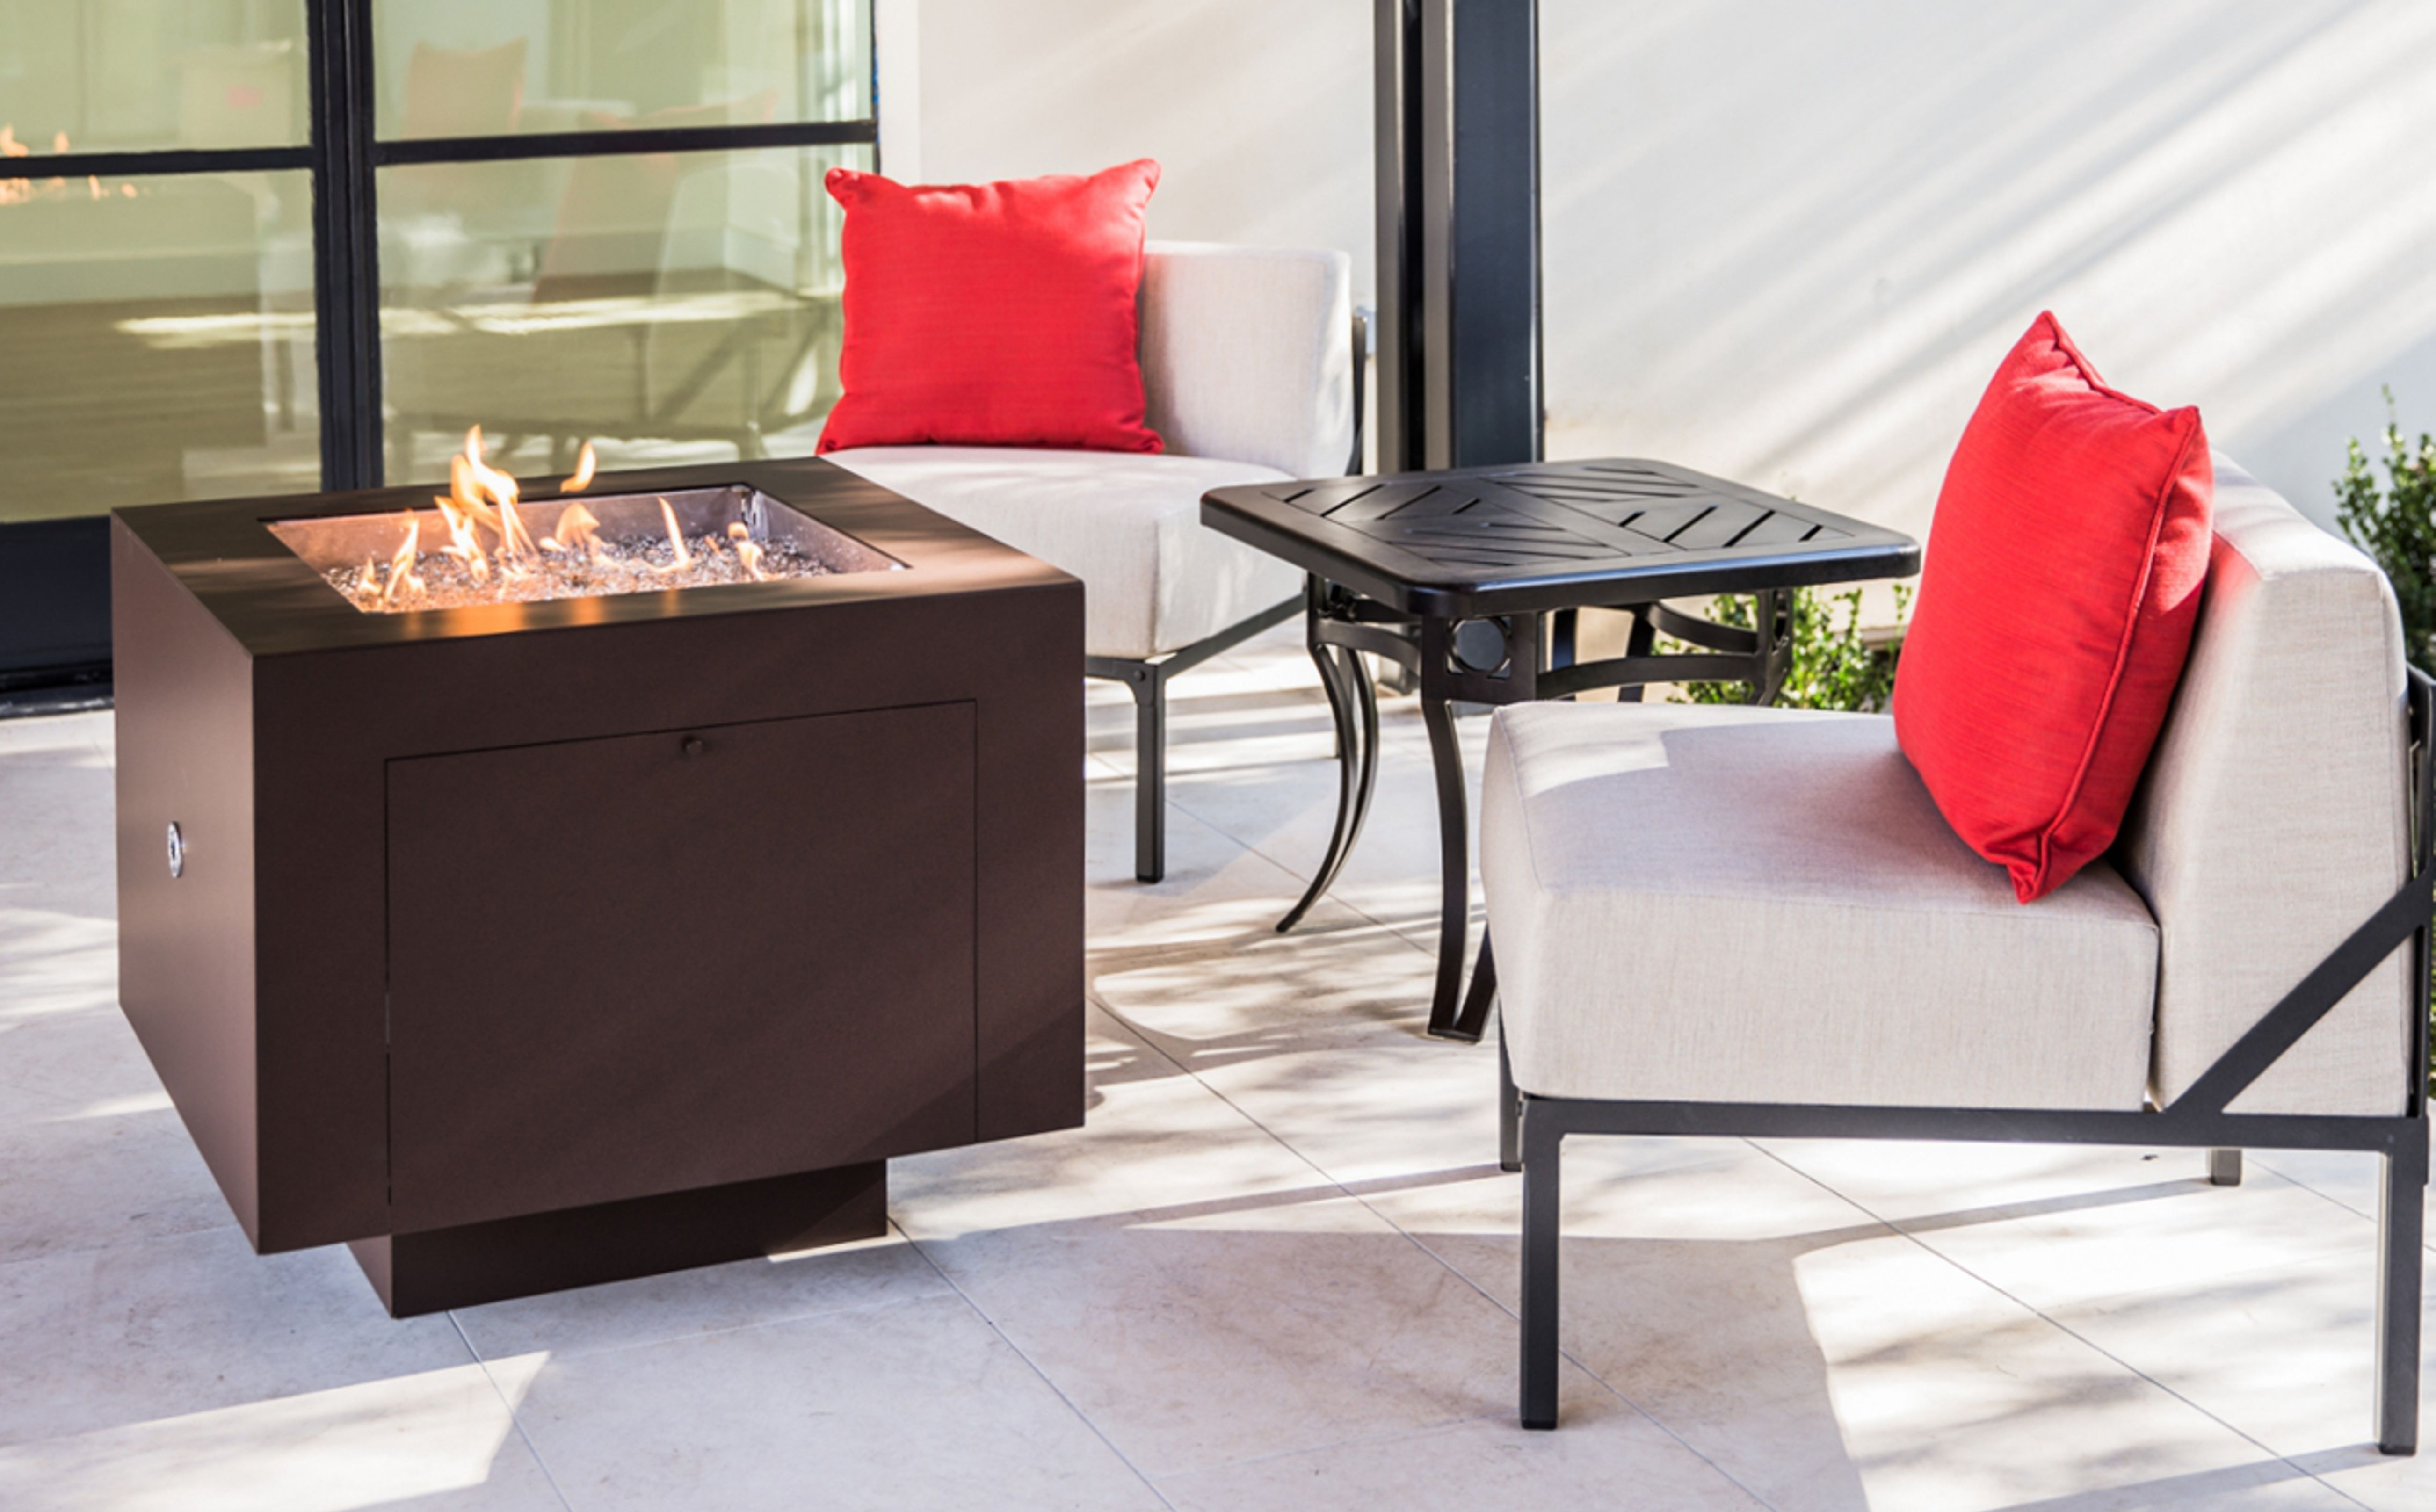 Faux Rust Powder Coated Fire Pit A Standard 20 Lbs Propane Tank Fit Inside This Fire Pit Five Standard Colors Custom Fire Pit Gas Firepit Modern Fire Pit